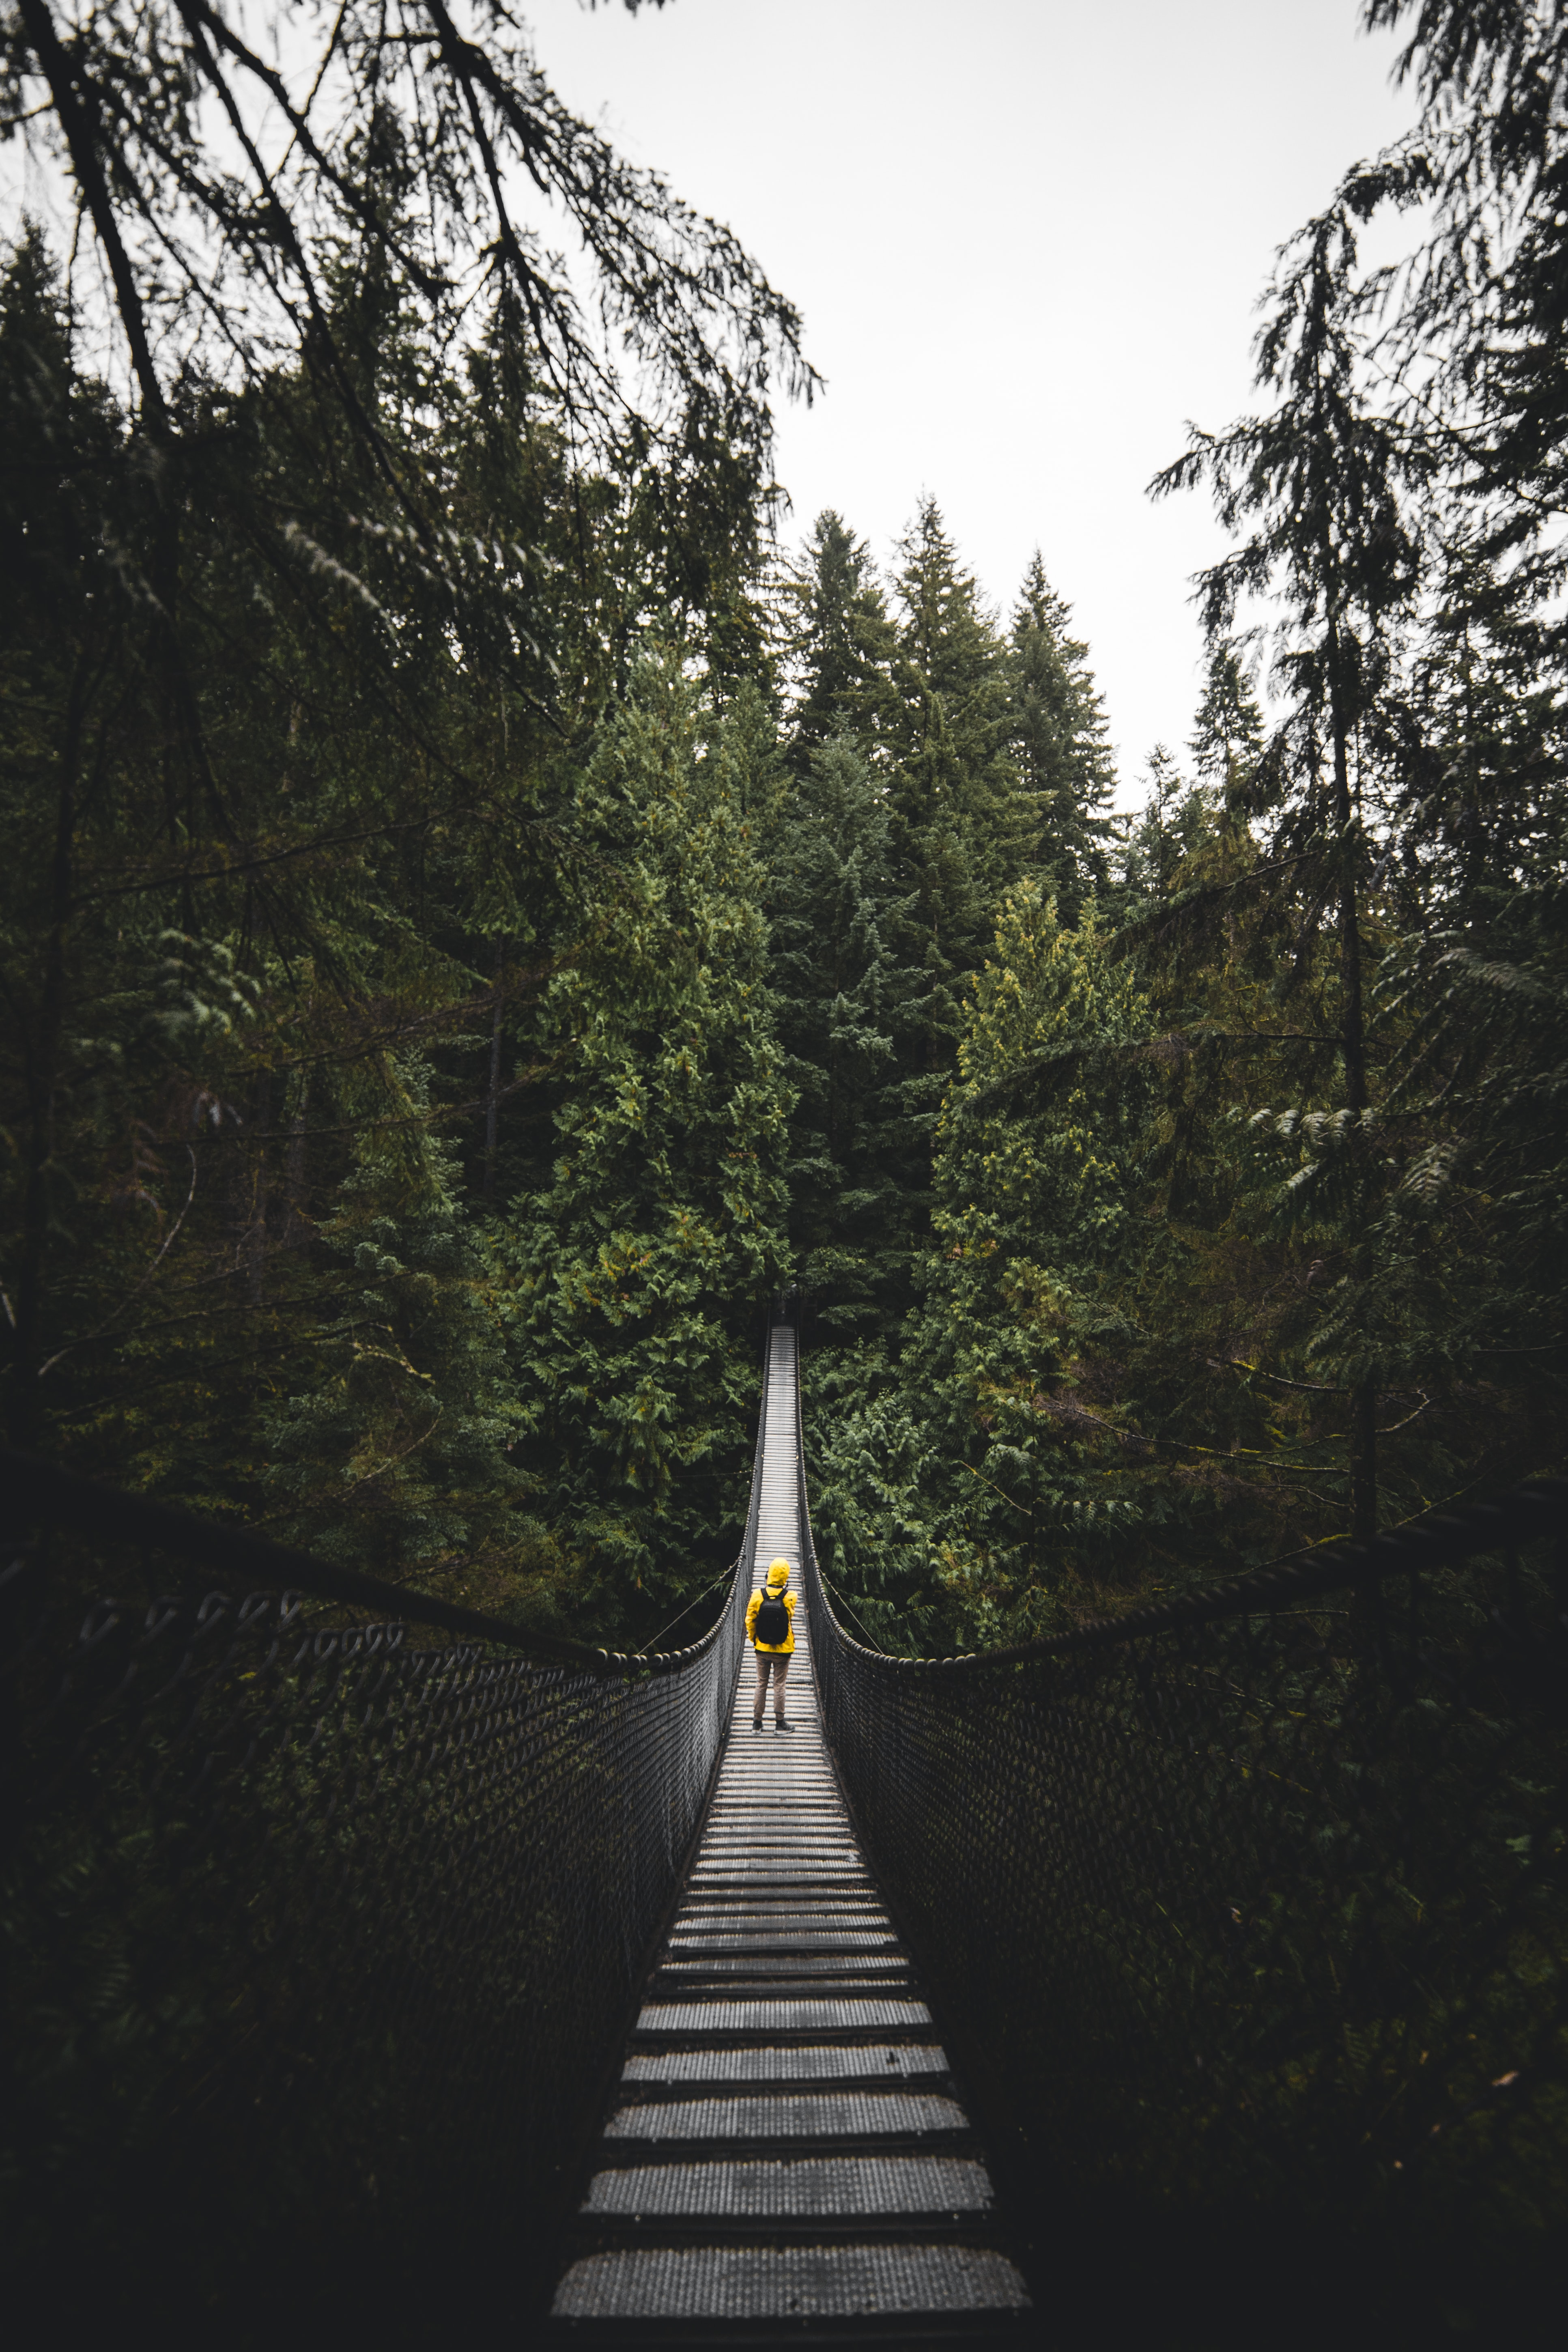 person standing in the center of hanging bridge at daytime